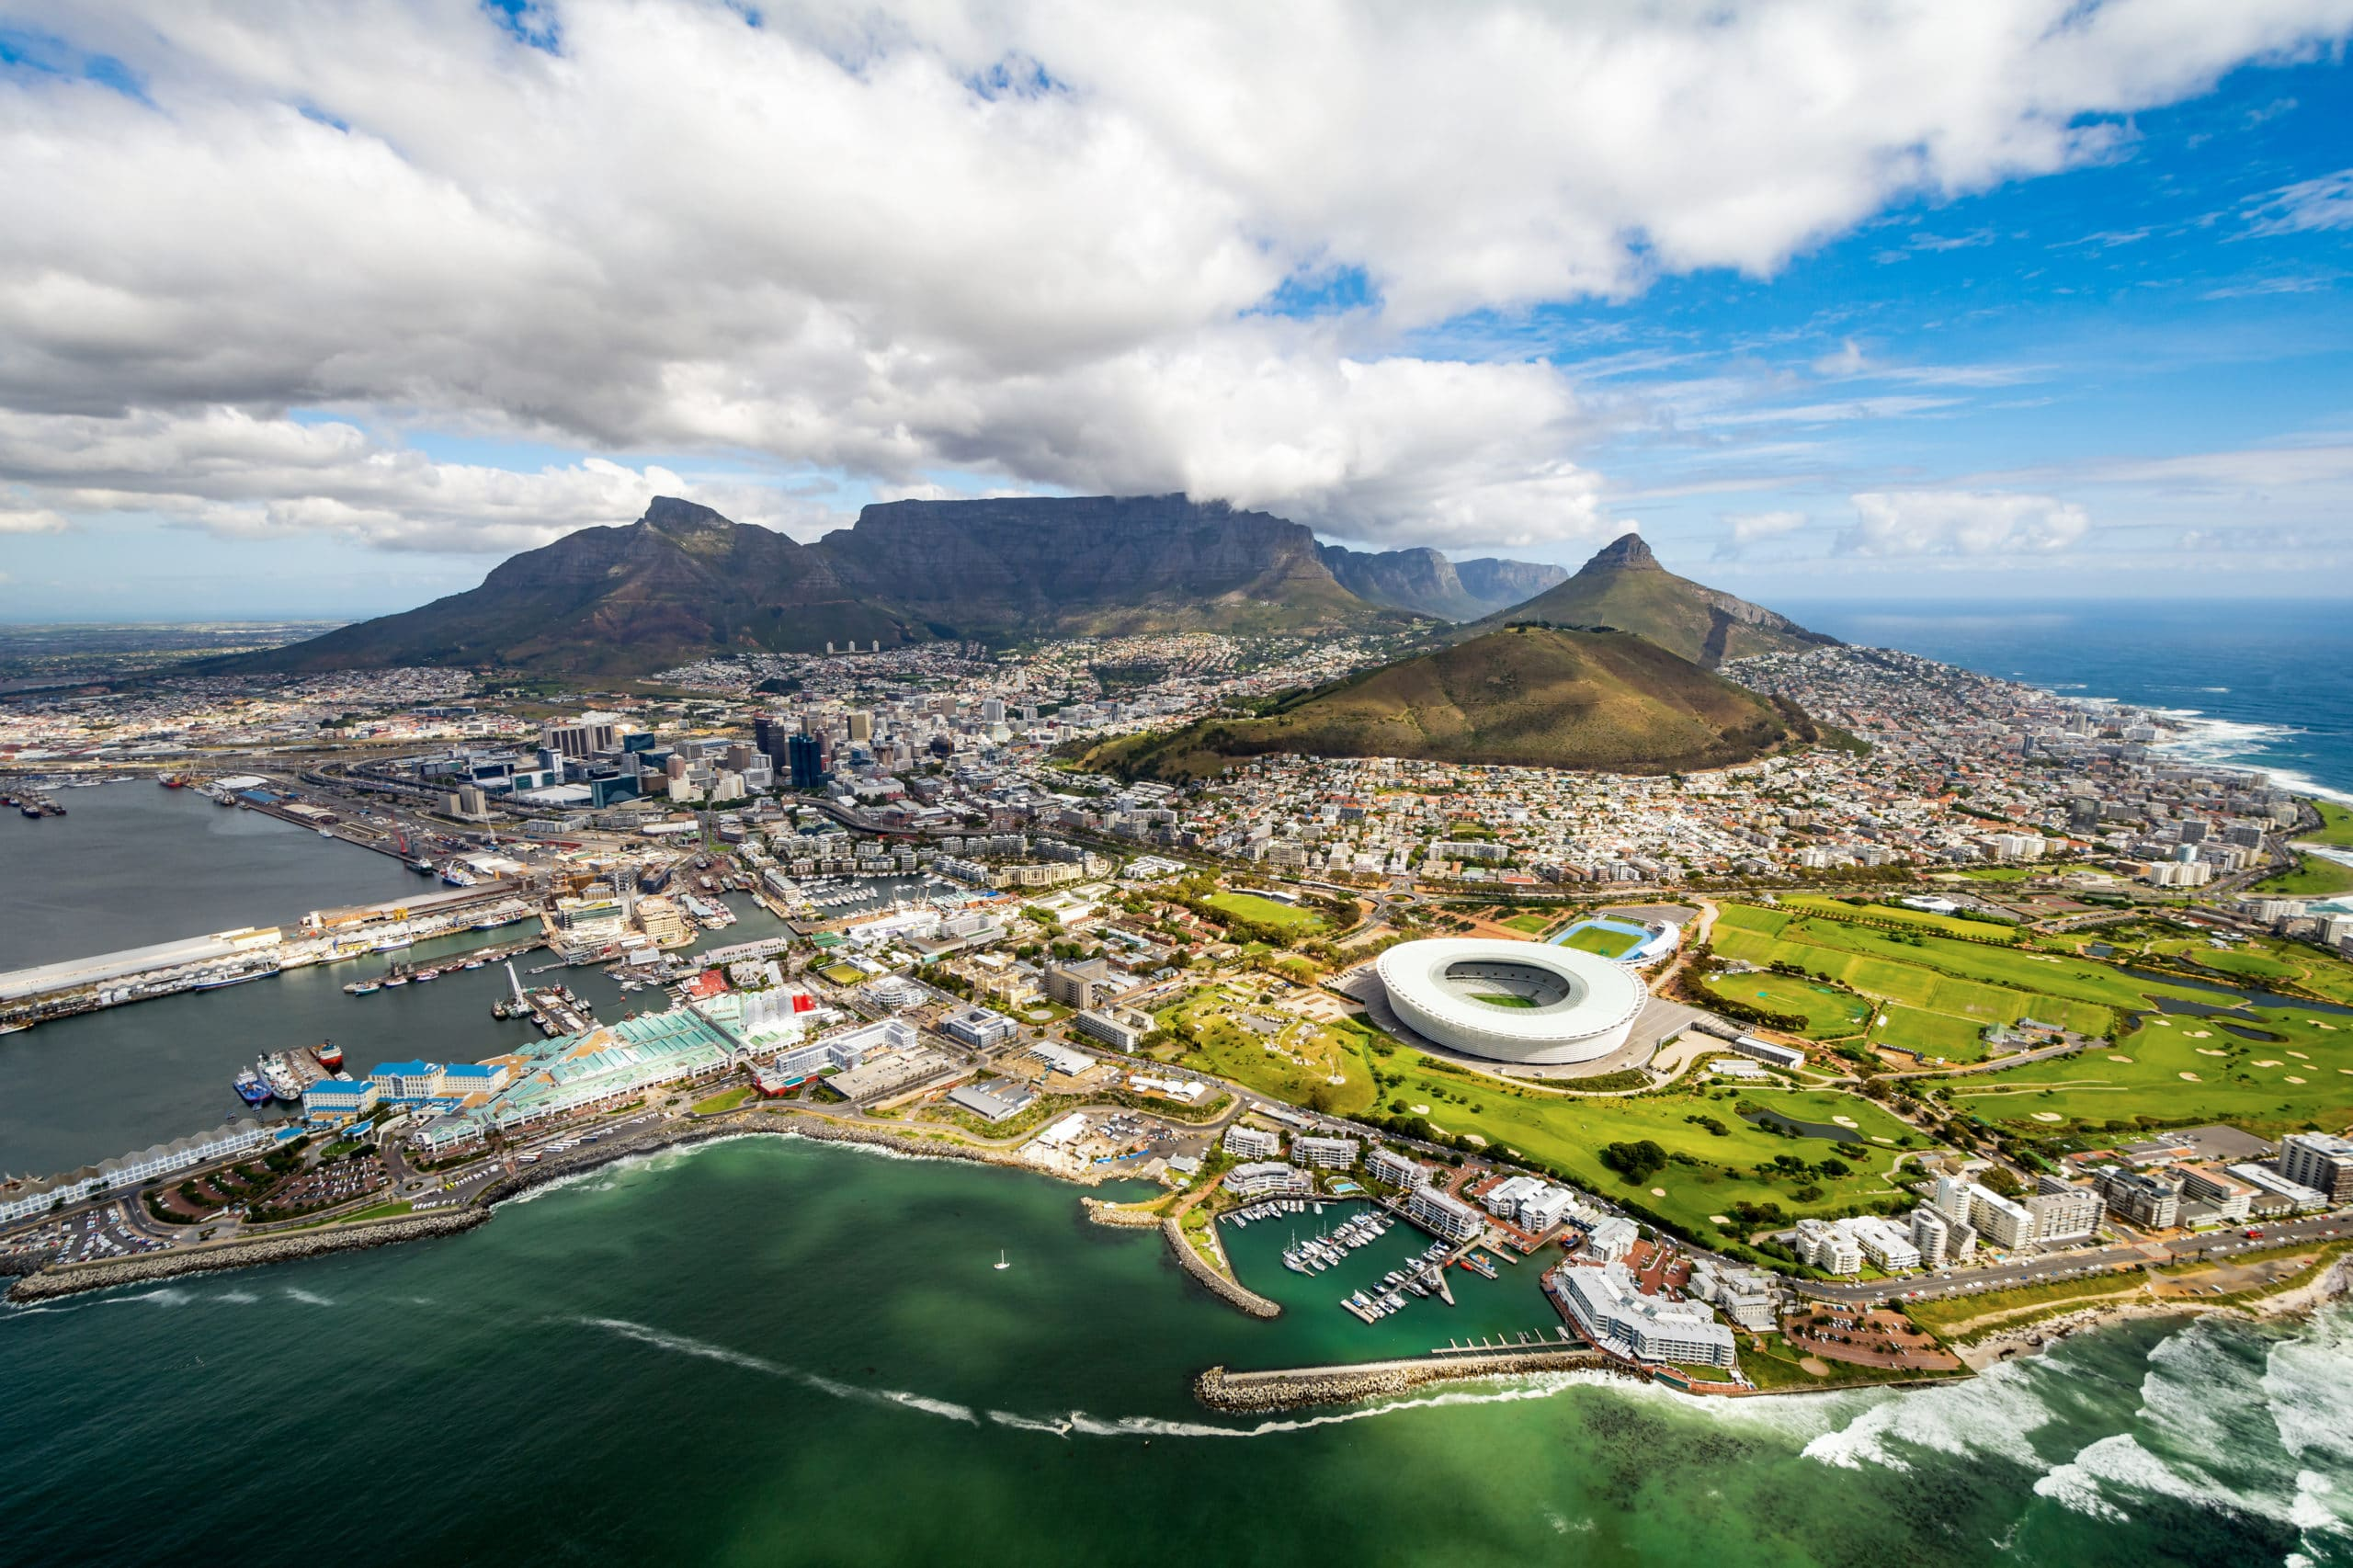 Aerial photograph of Cape Town, South Africa.